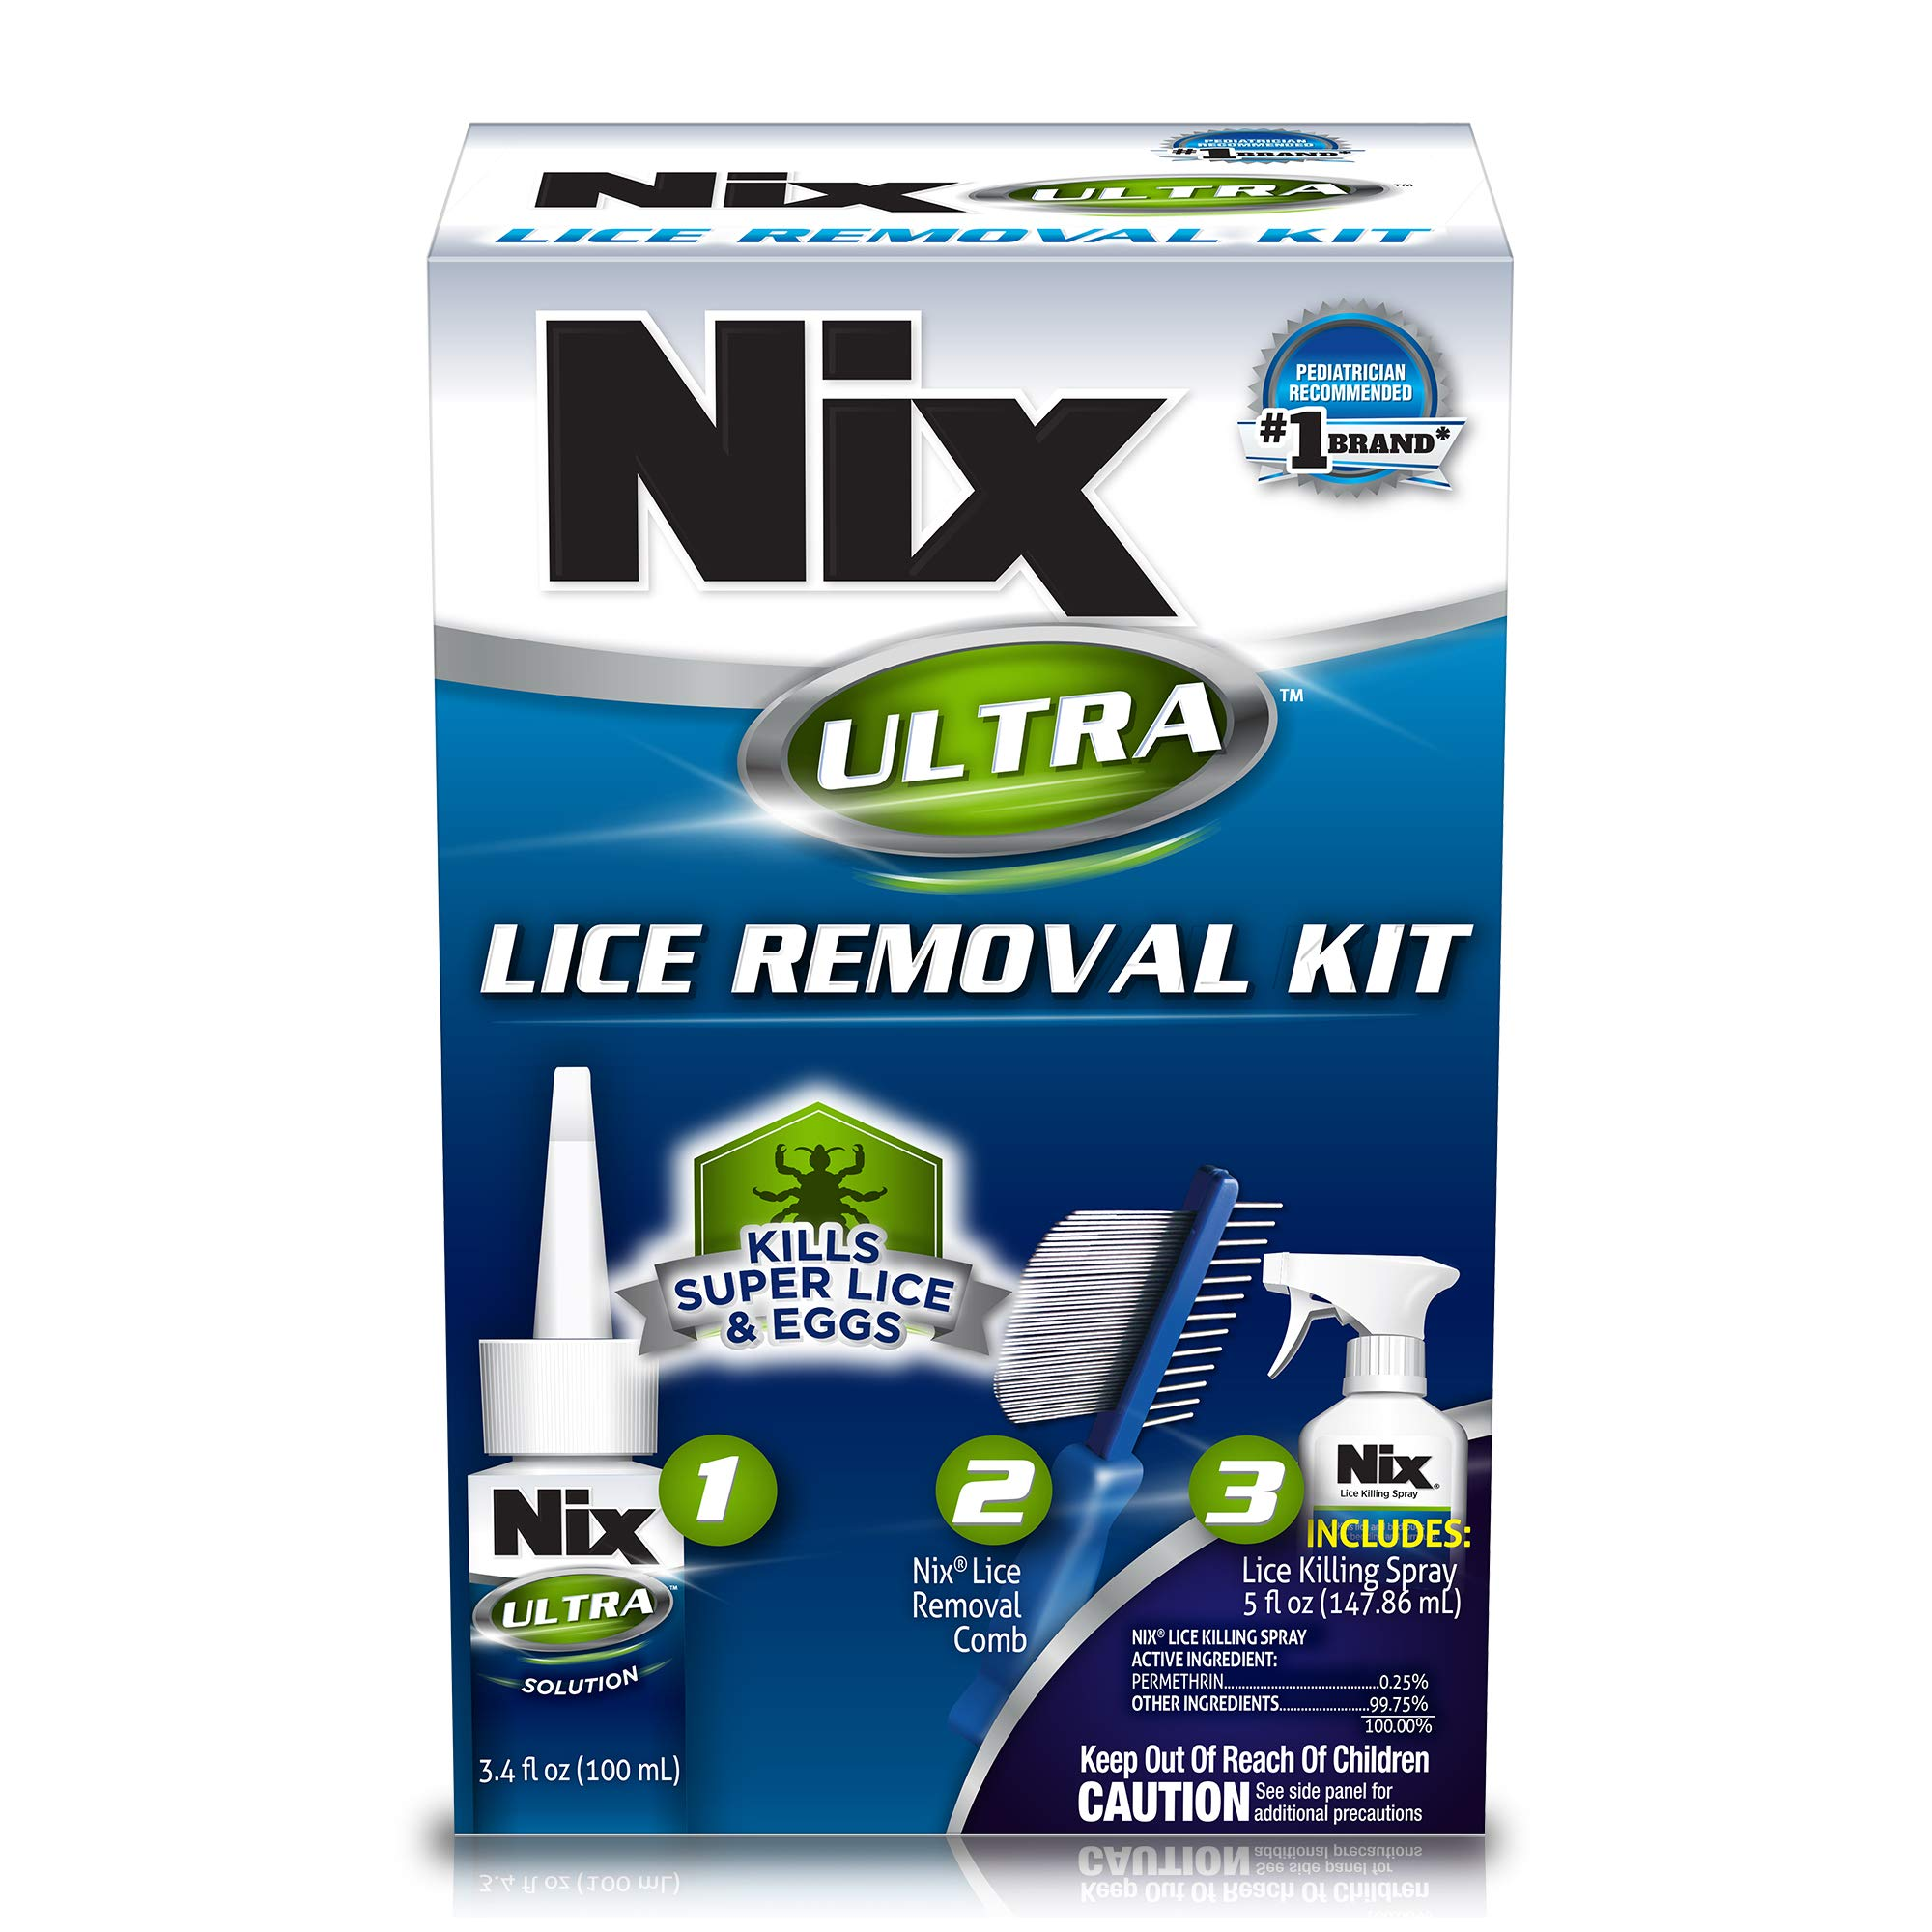 Nix Ultra Lice Removal Kit, Includes Lice Removal Comb and Control Spray, 3 Piece Set, 1 Count